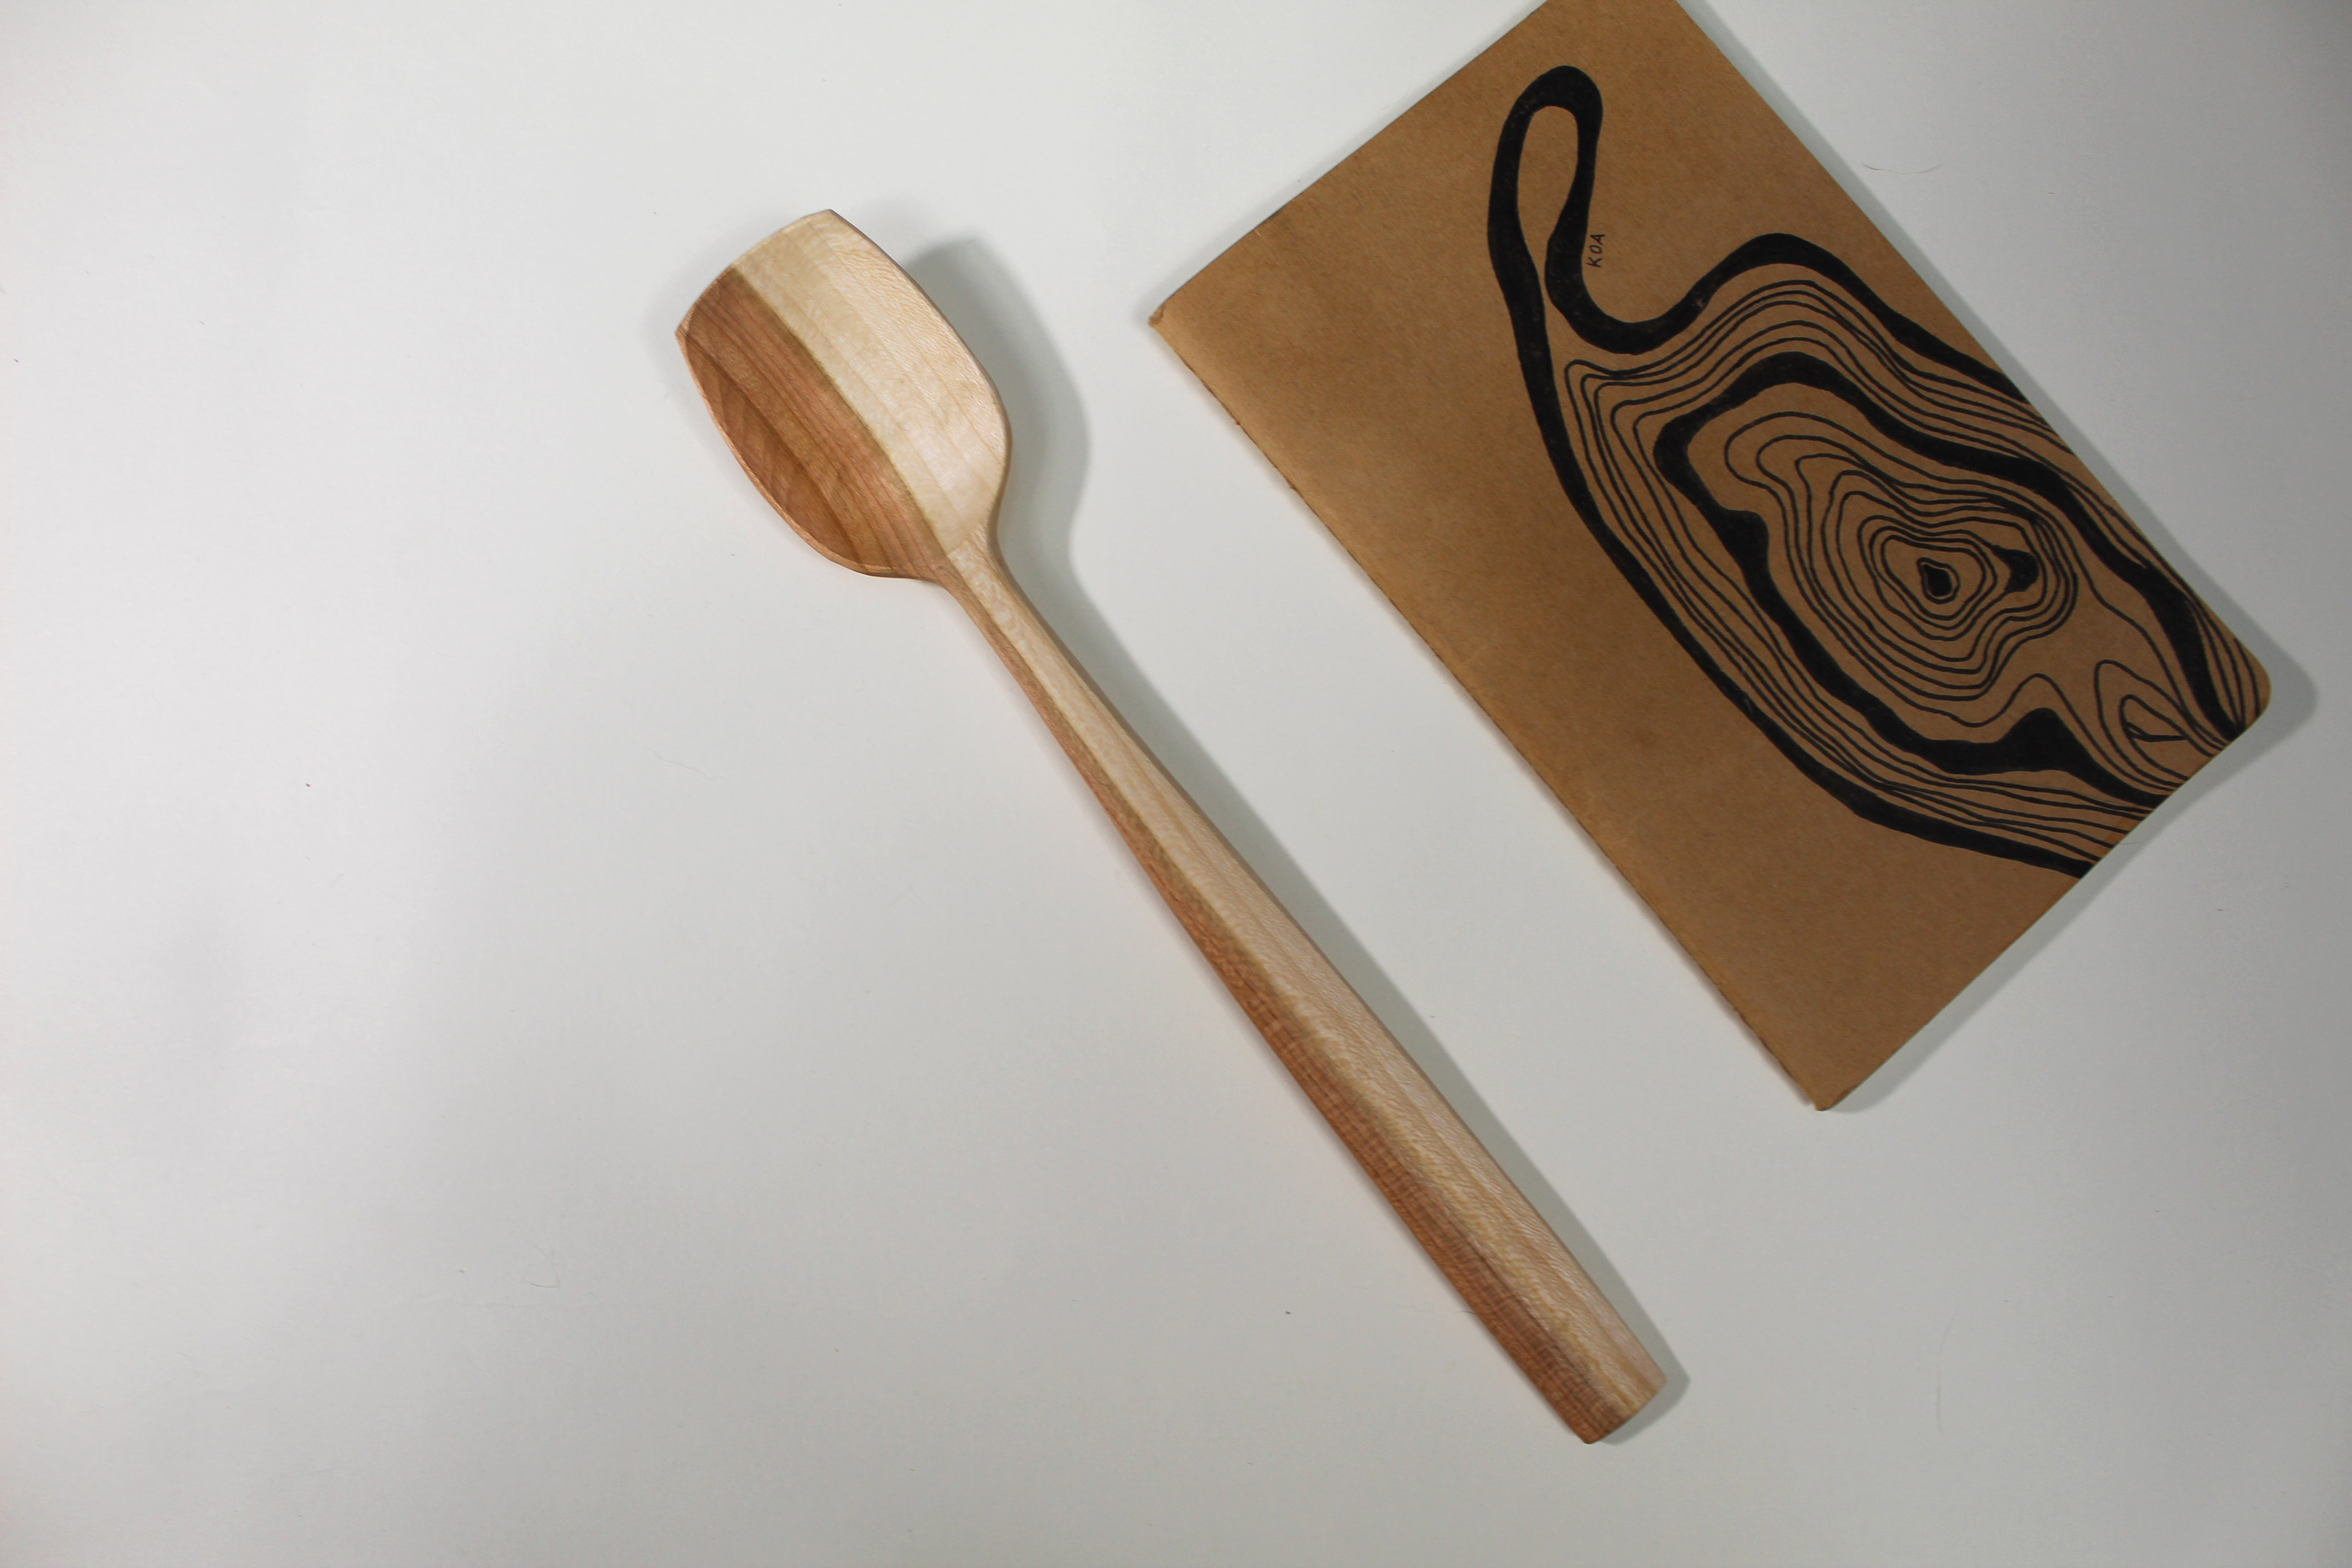 Cooking/Serving Spoon